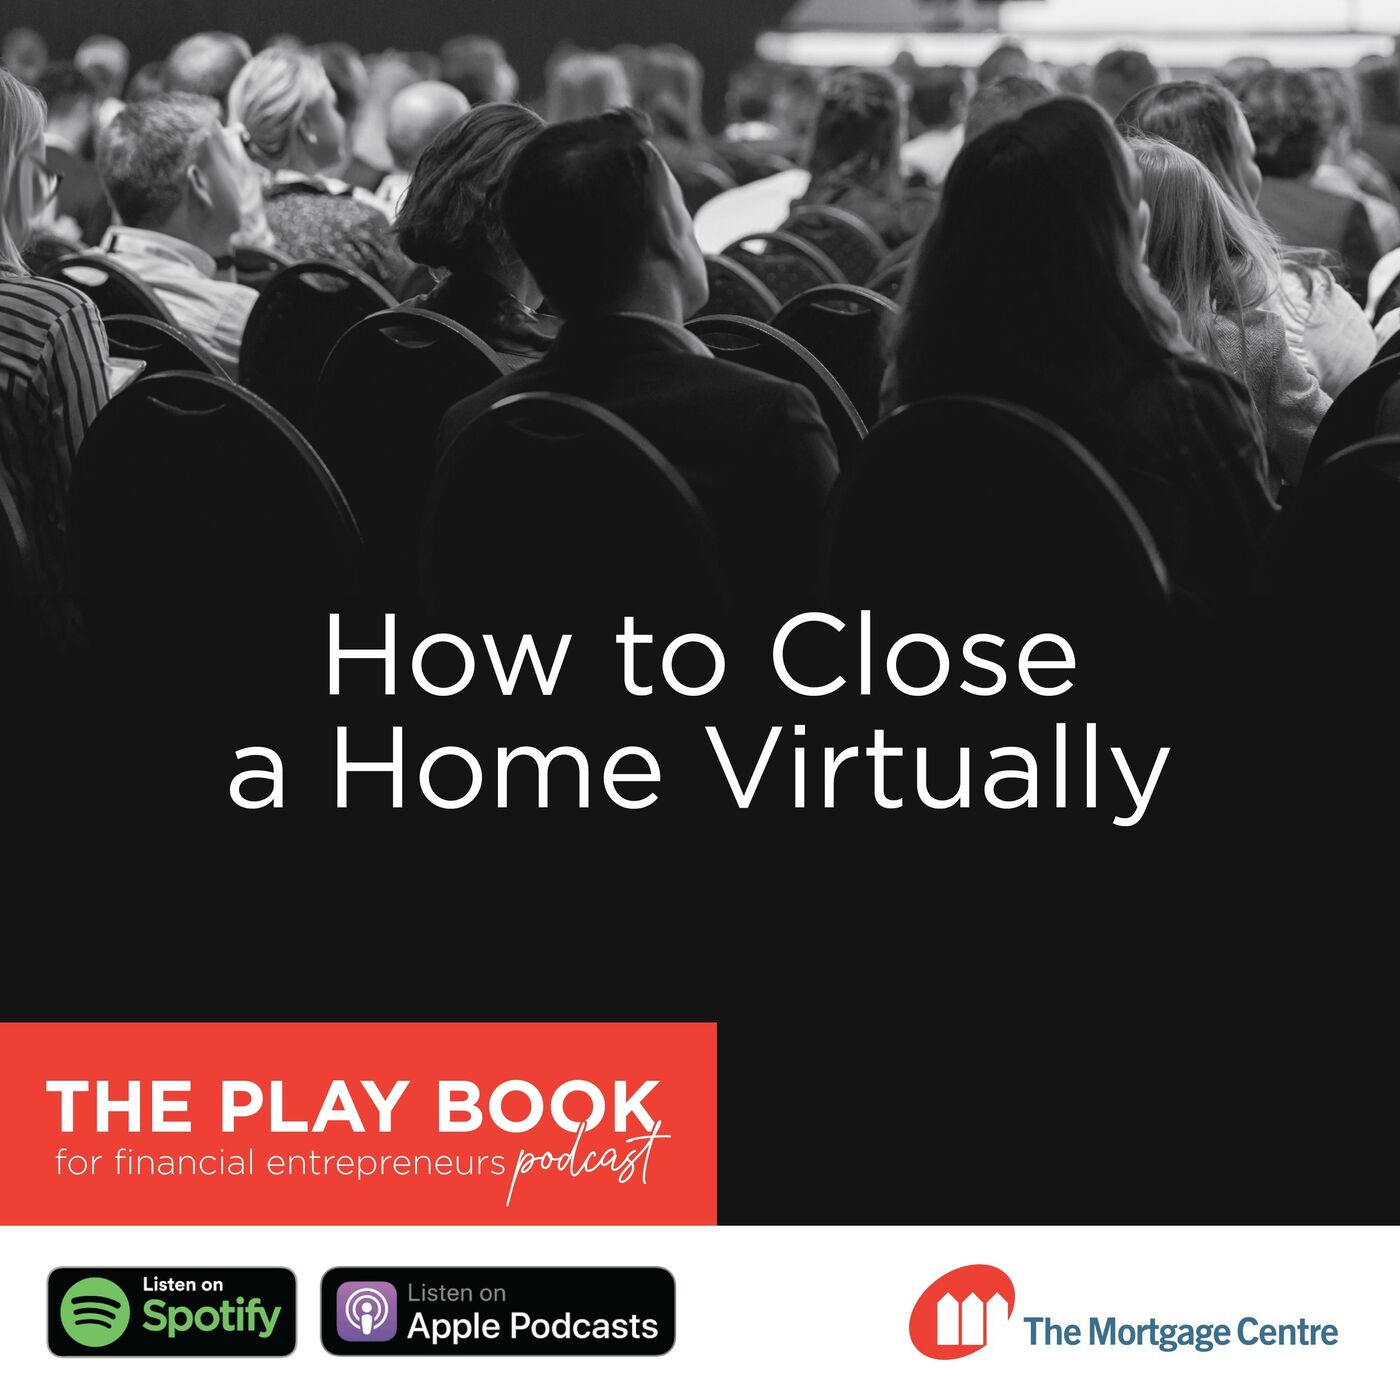 How to close a Mortgage transaction virtually while locked down.